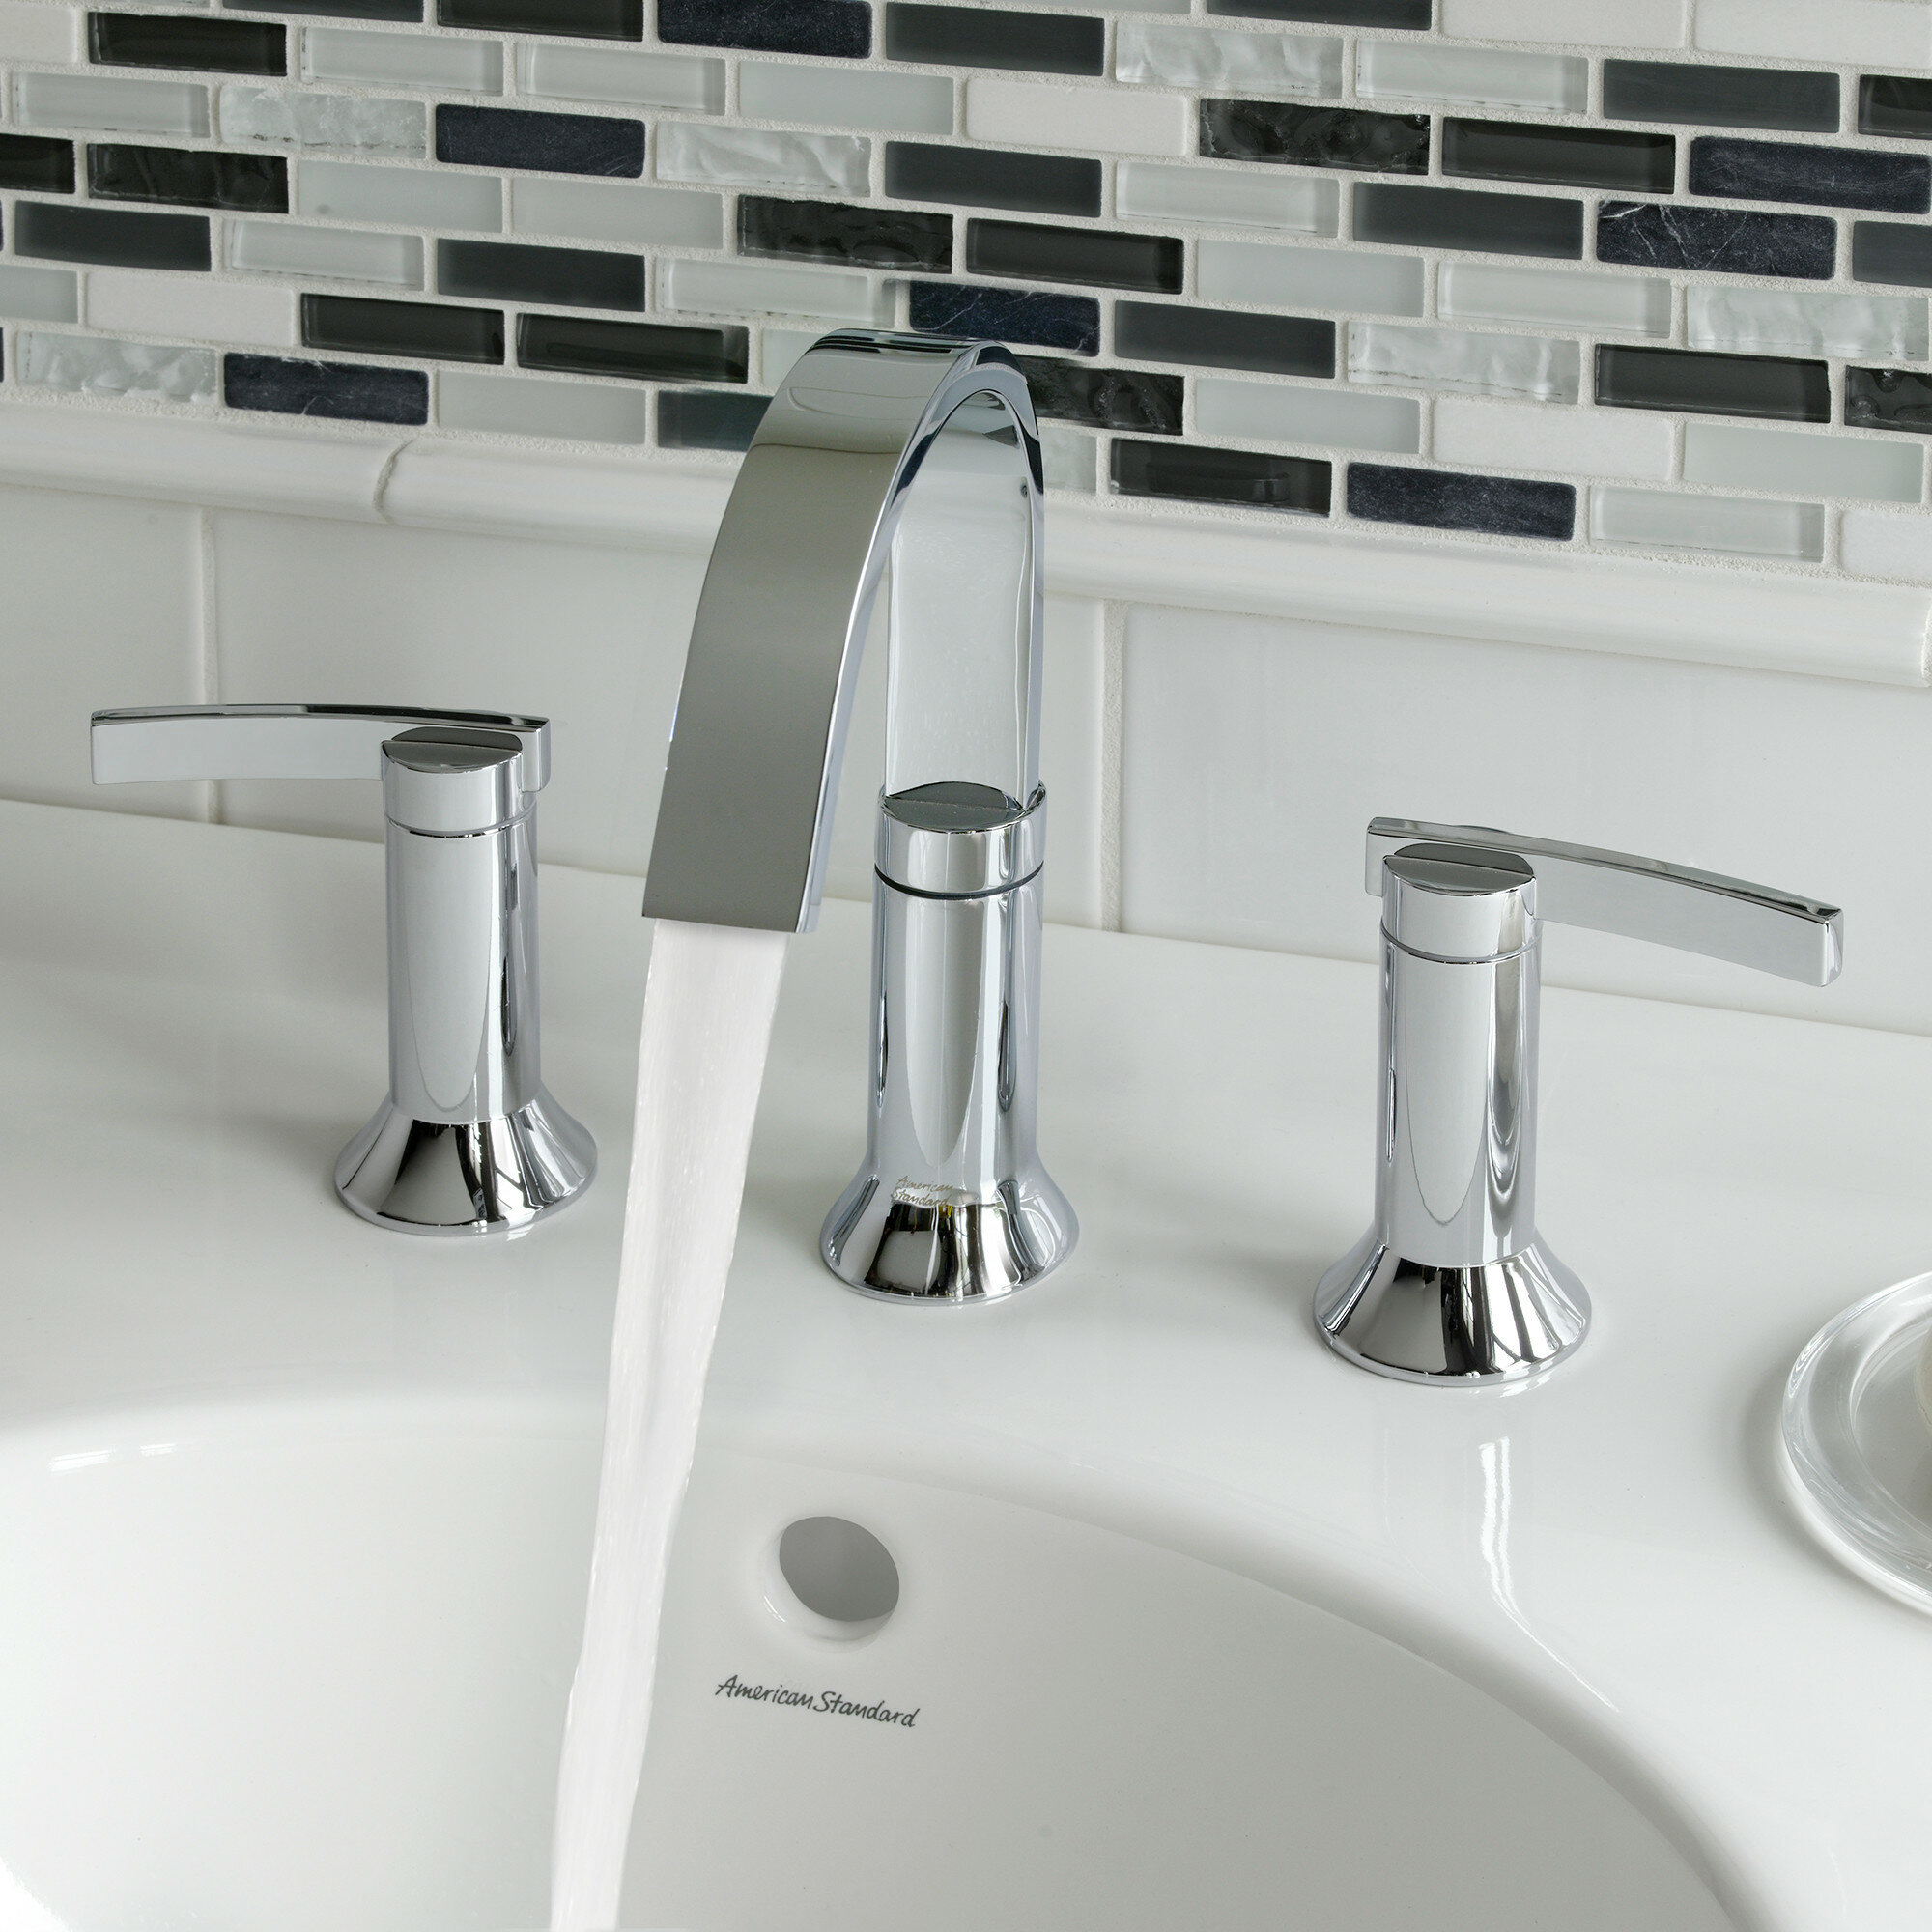 basin rowe widespread with new perrin faucet rower hole bath news expands bathroom lifestyle rohl collection image deco lavatory